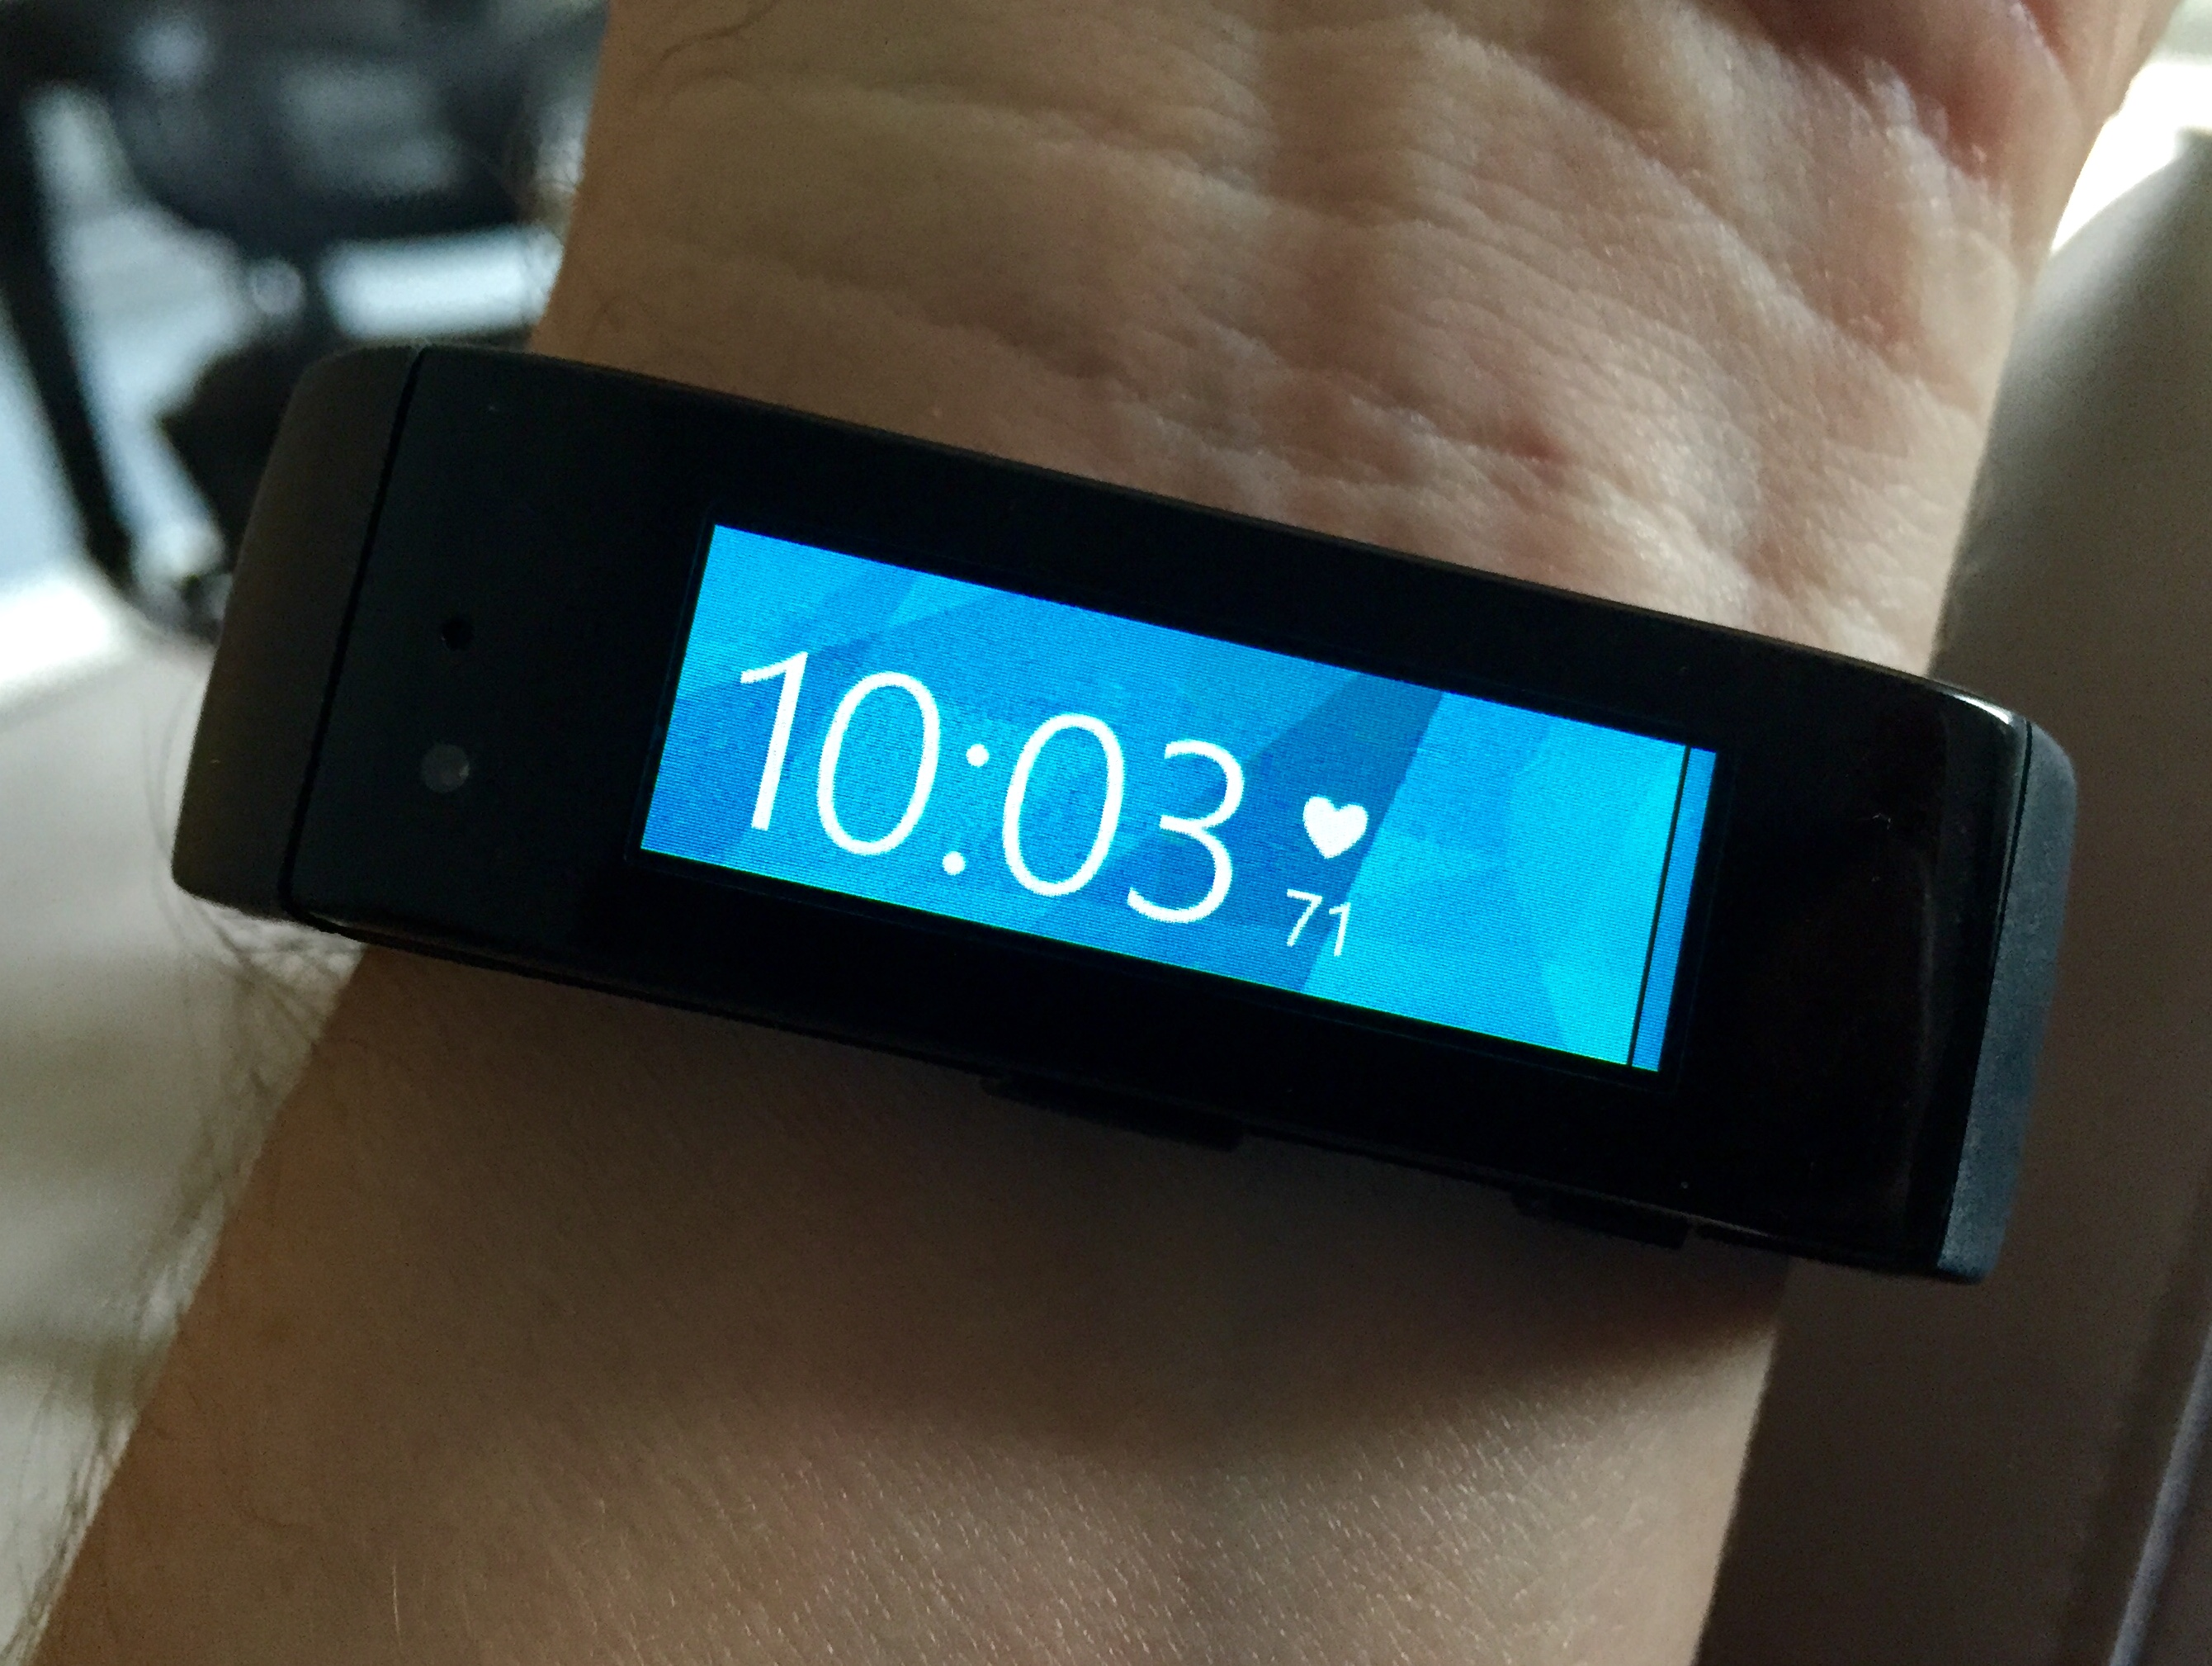 microsoft band is sold out  will return in 2015